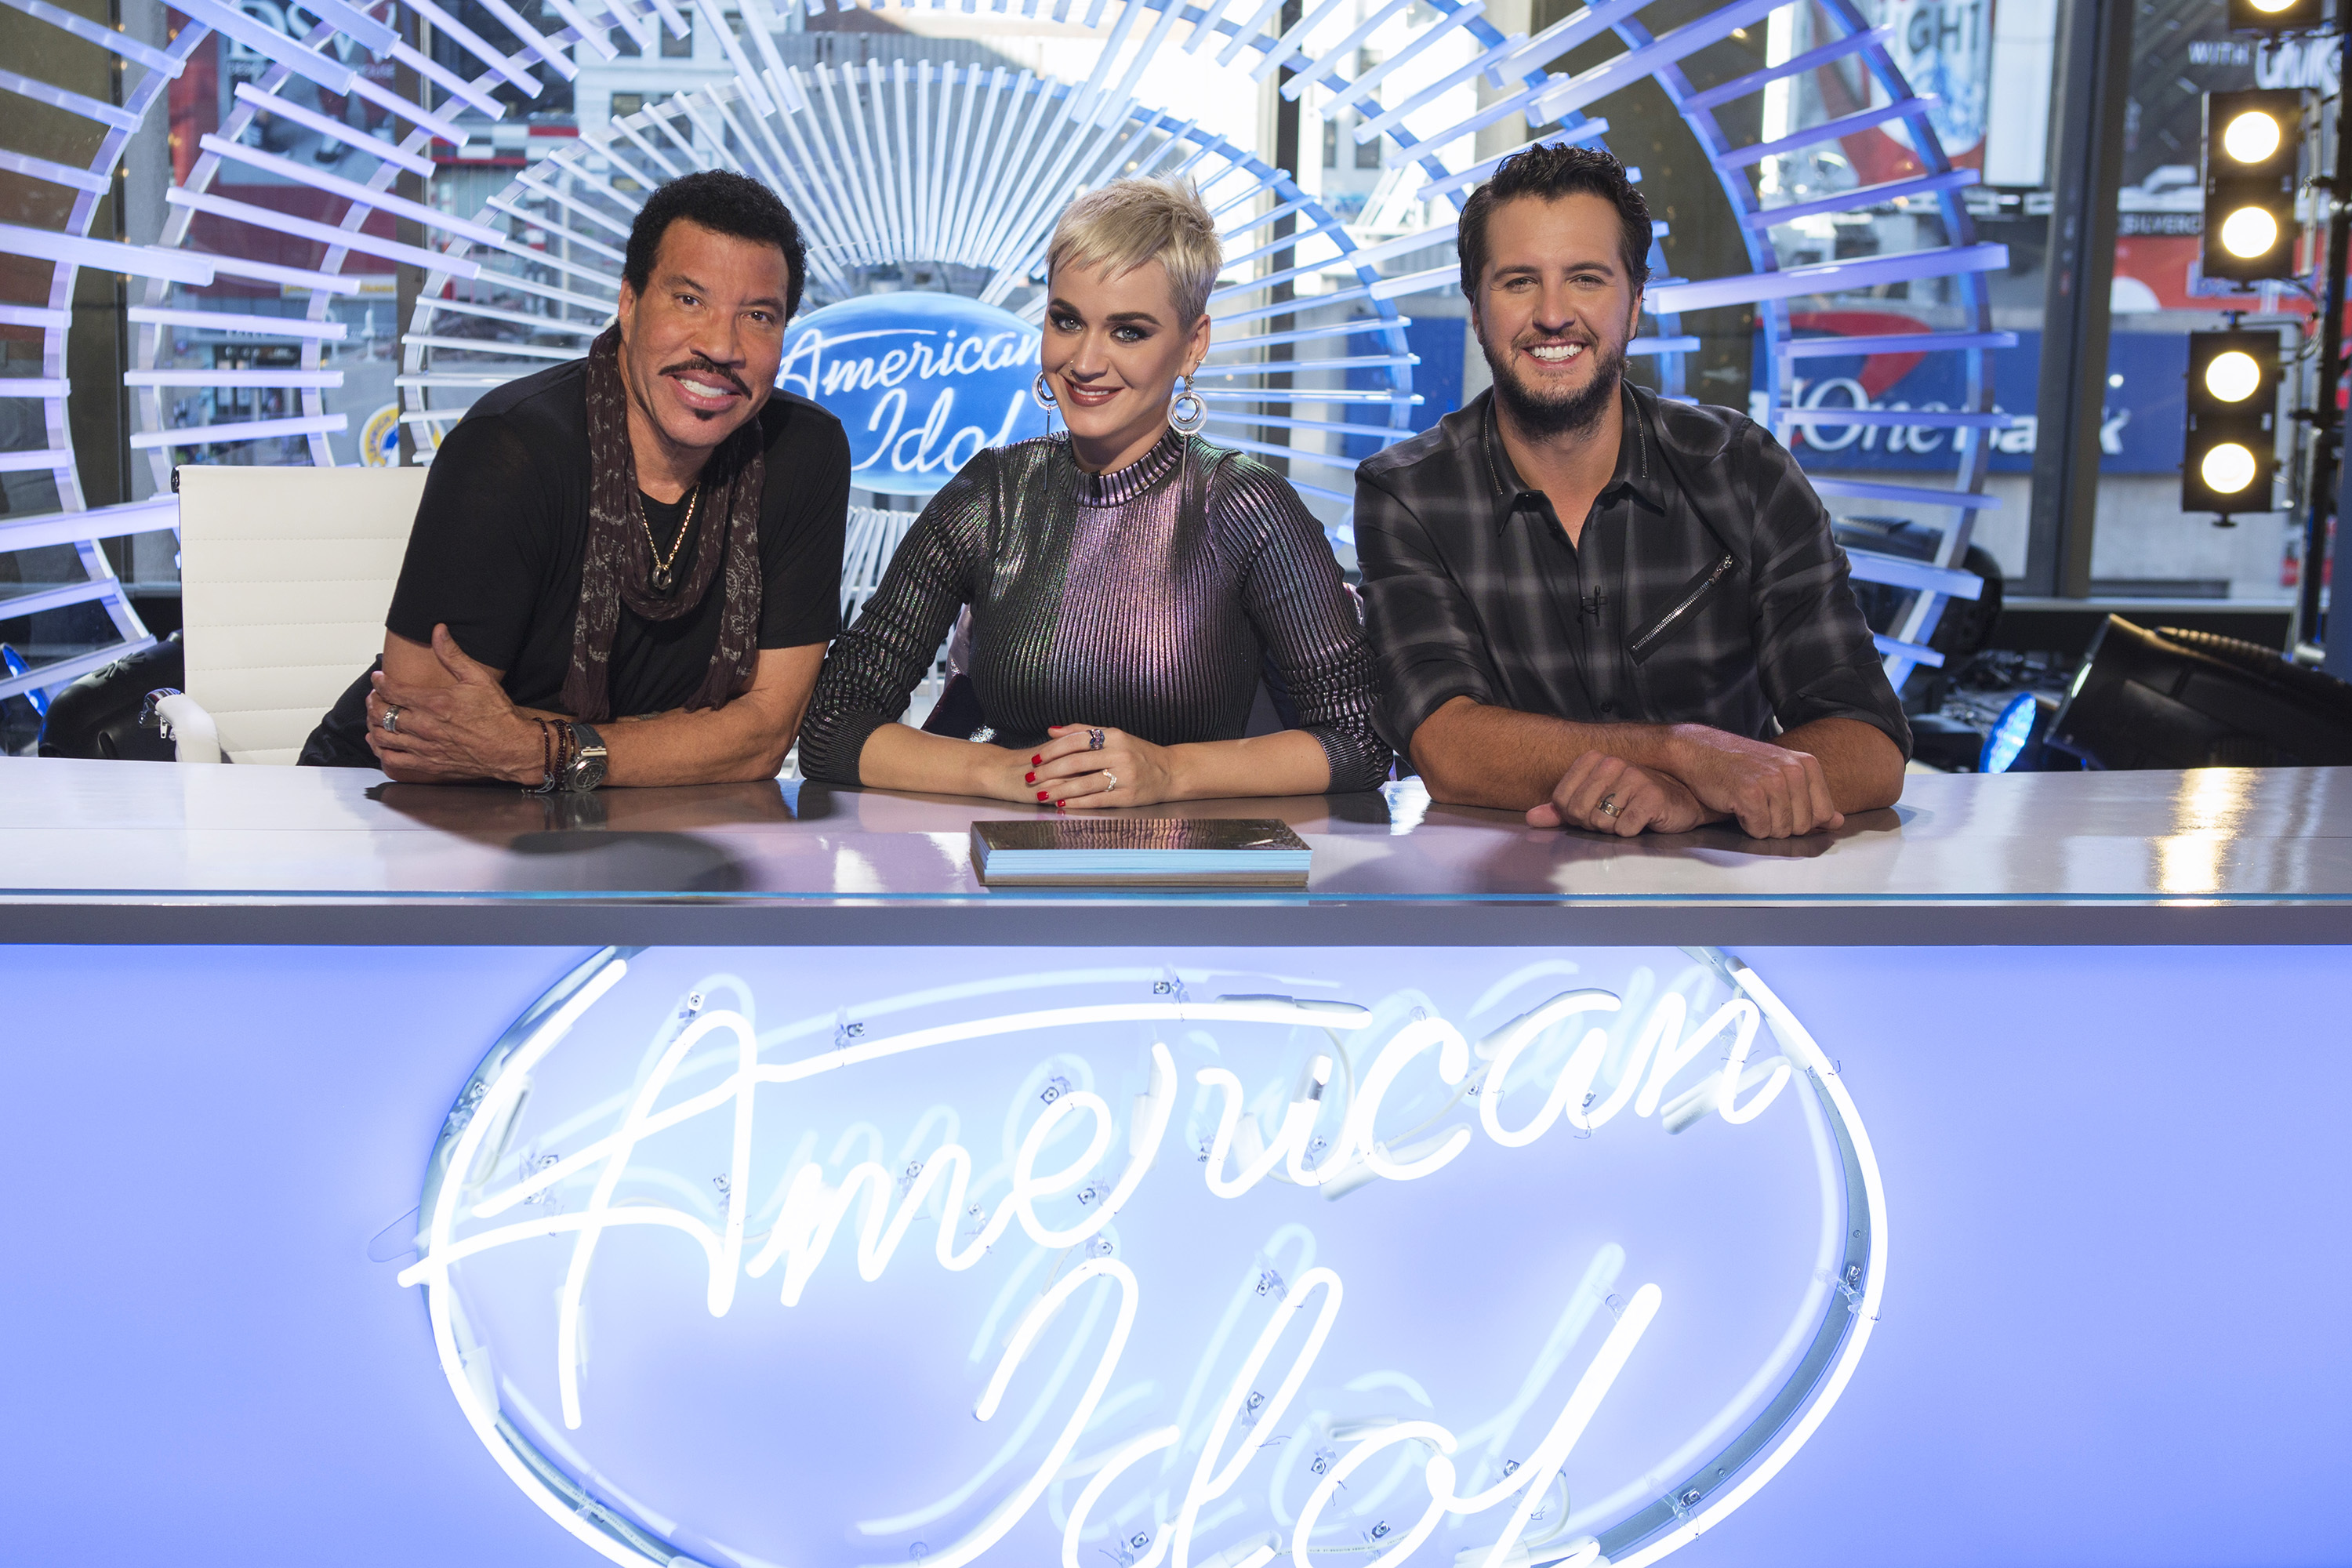 Charitybuzz meet katy perry lionel richie and luke bryan when lotpage kristyandbryce Gallery